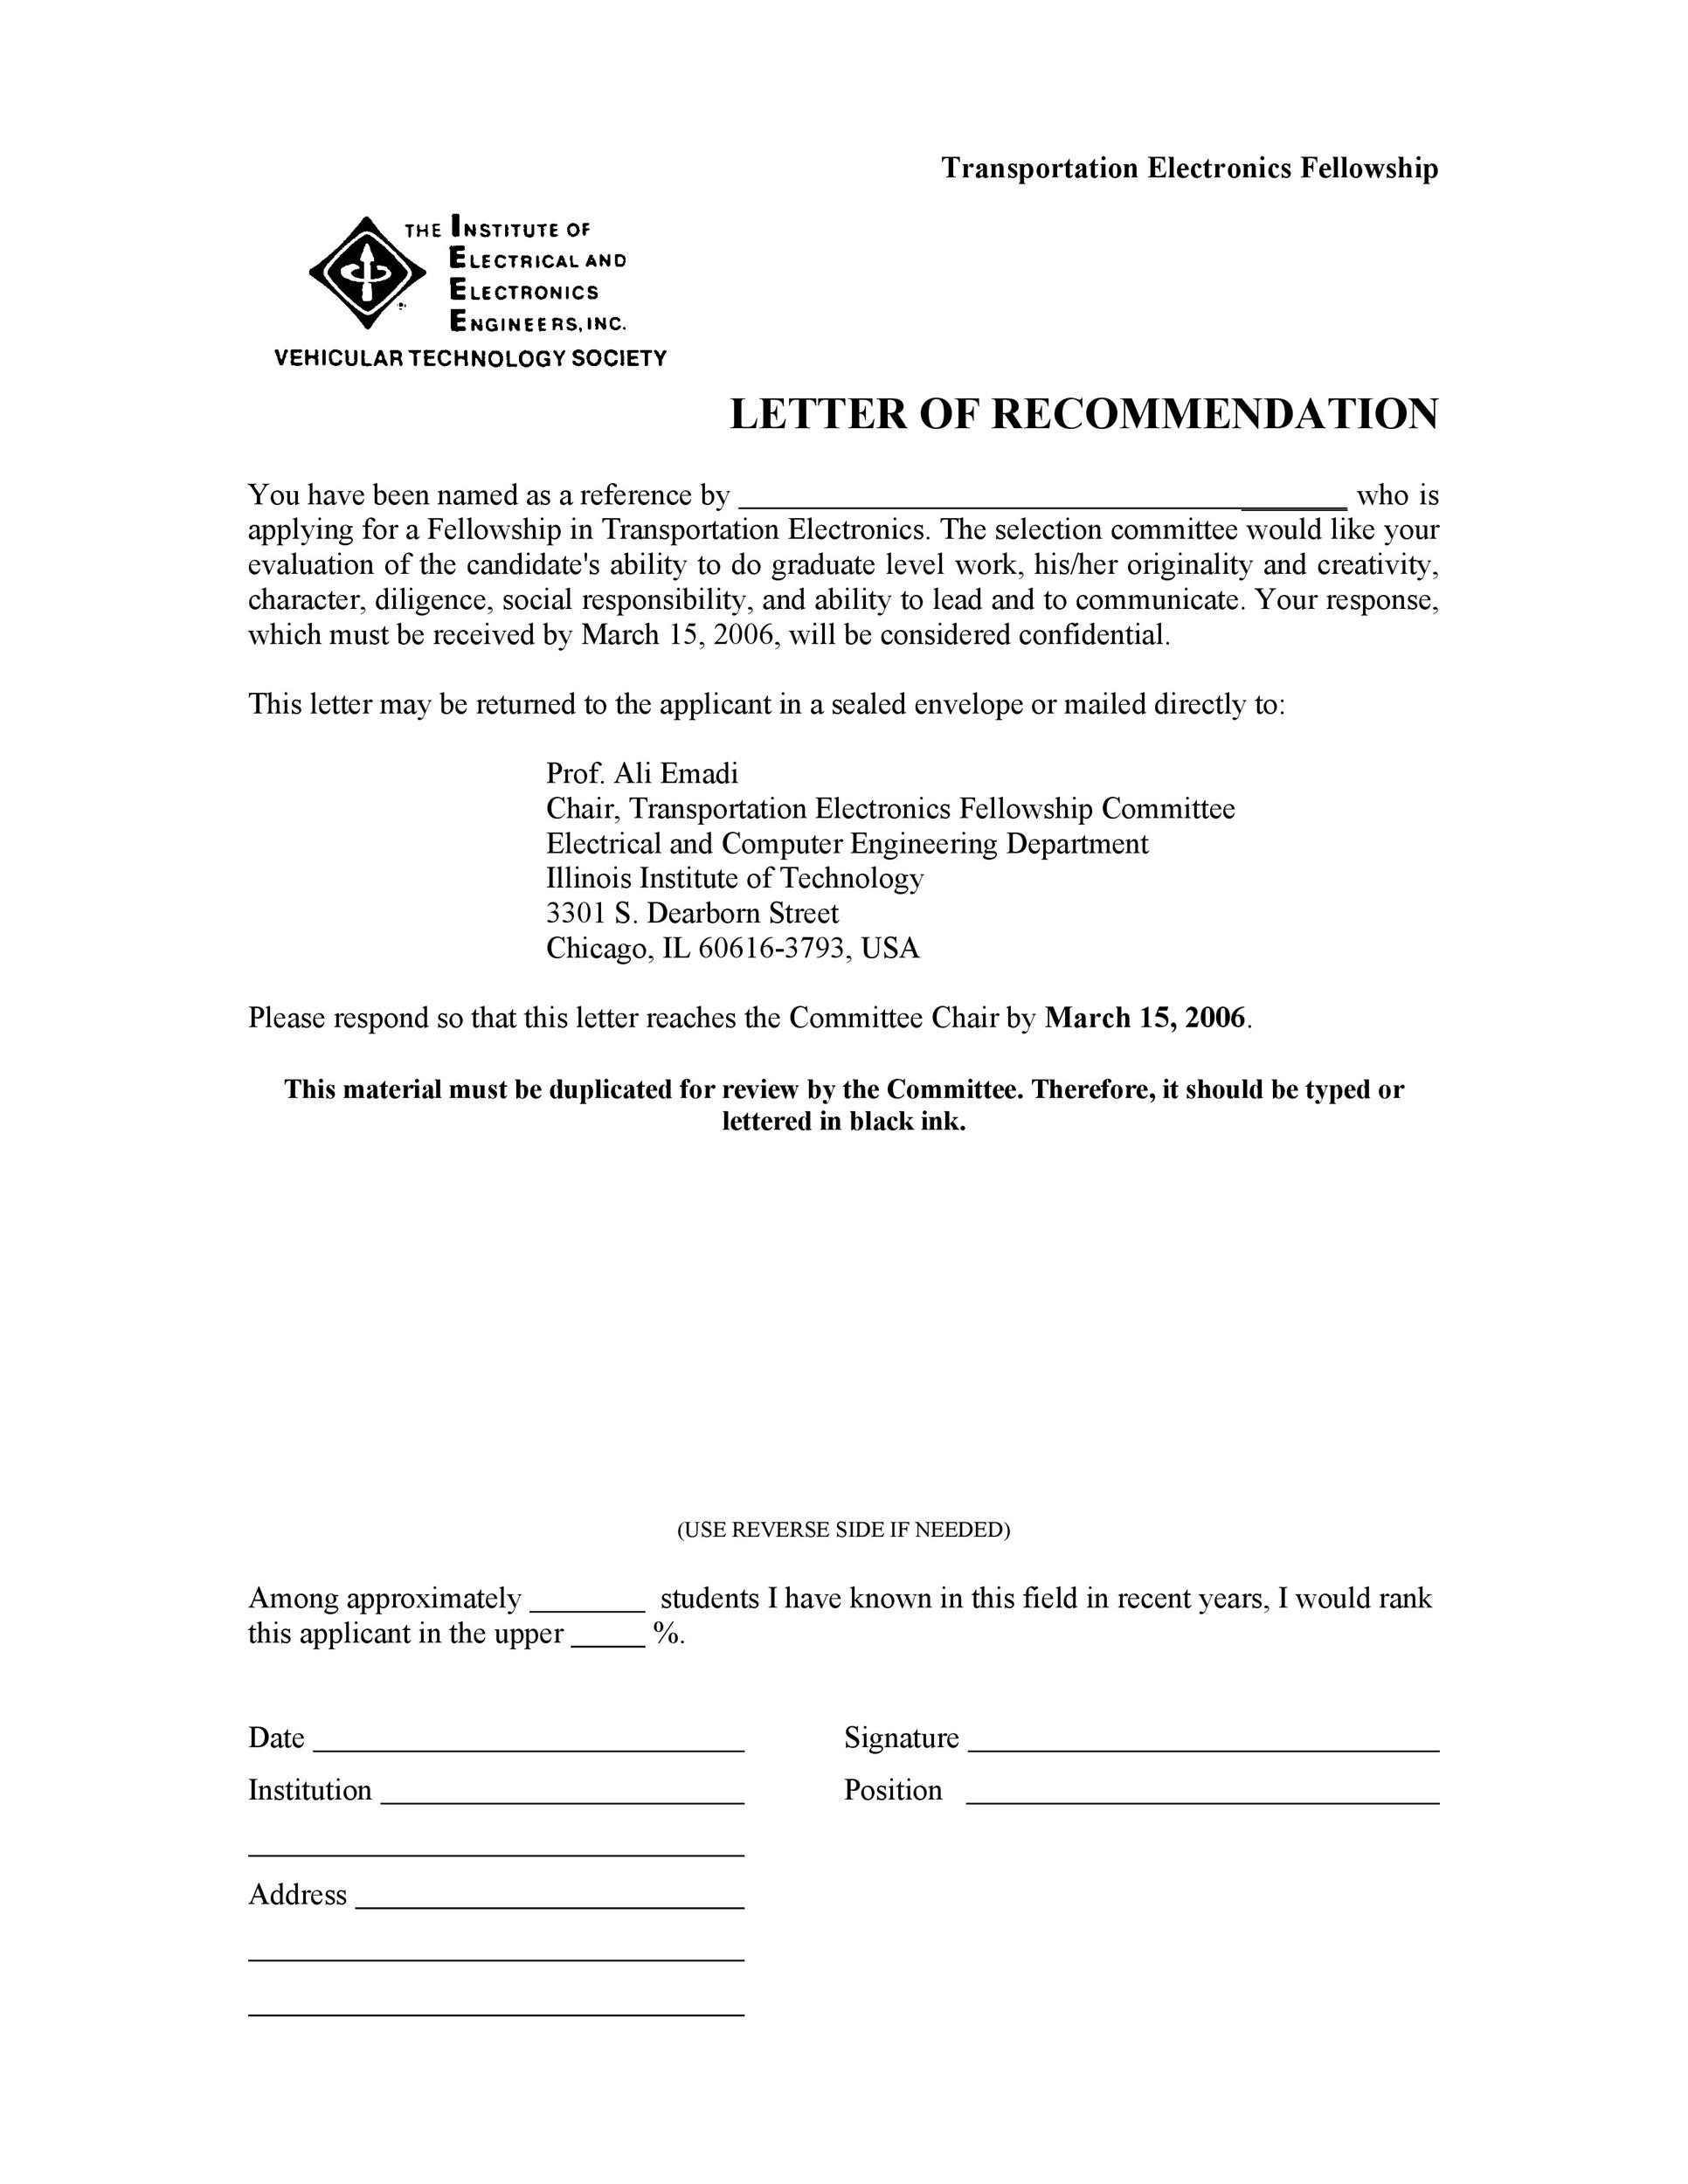 Free Letter of recommendation 30